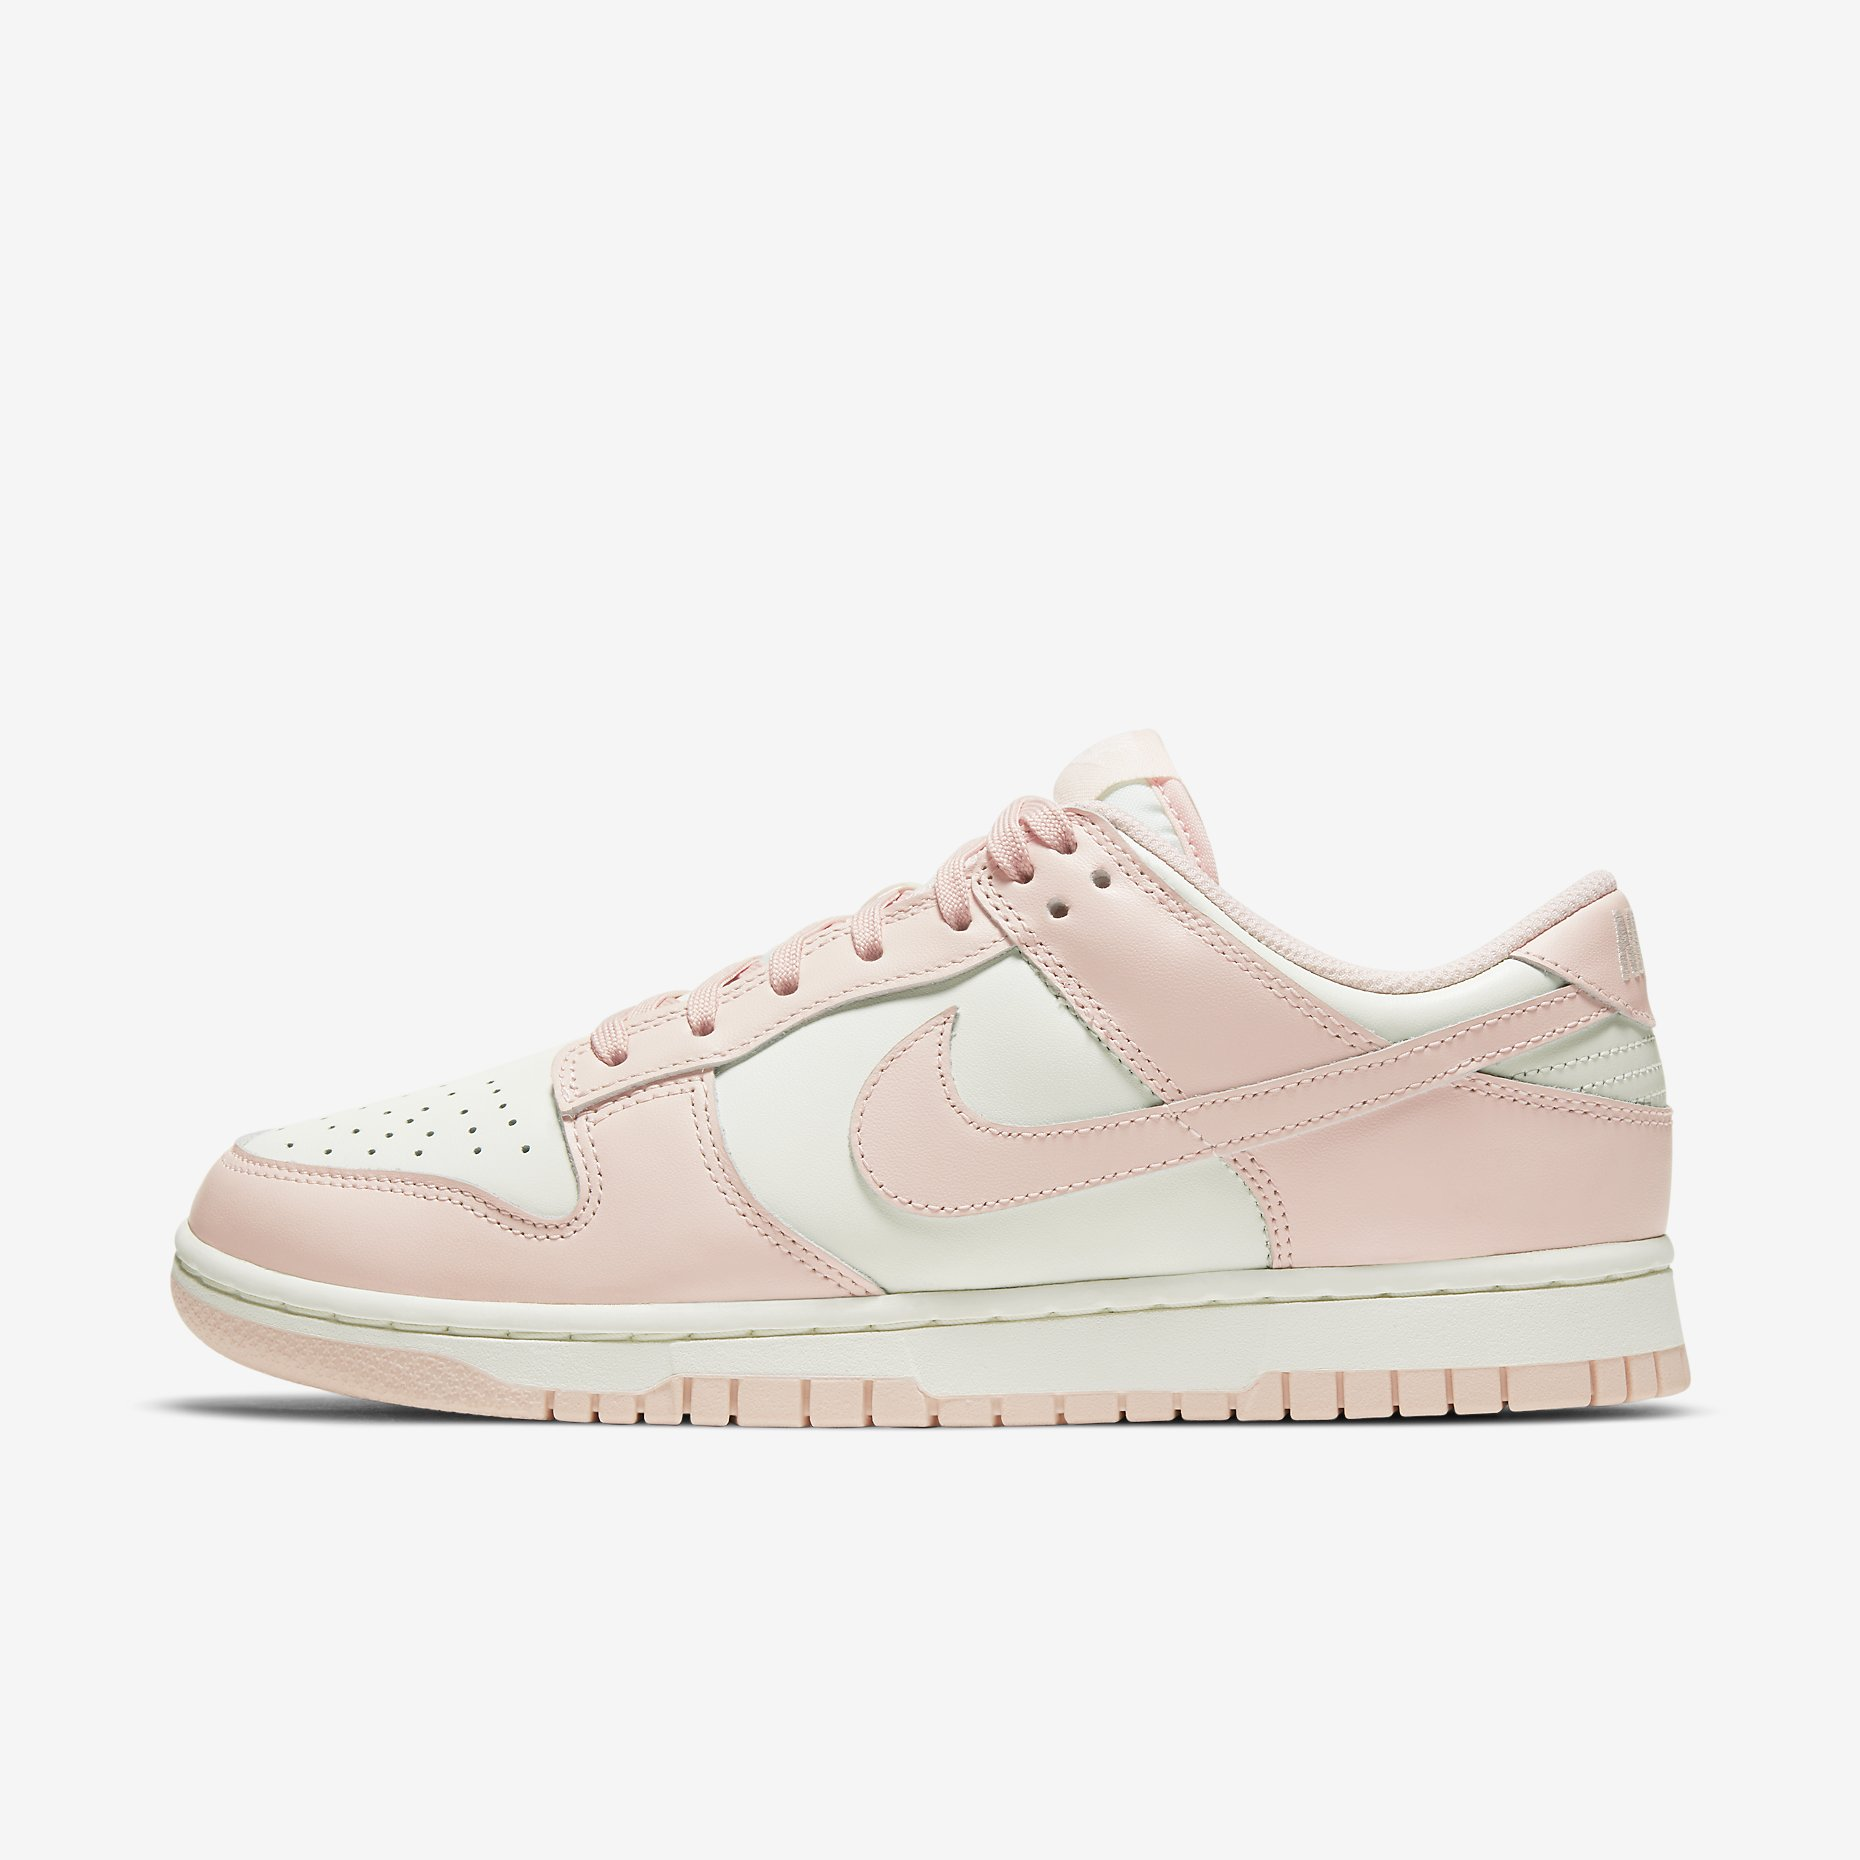 Women's Nike Dunk Low 'Orange Pearl'}